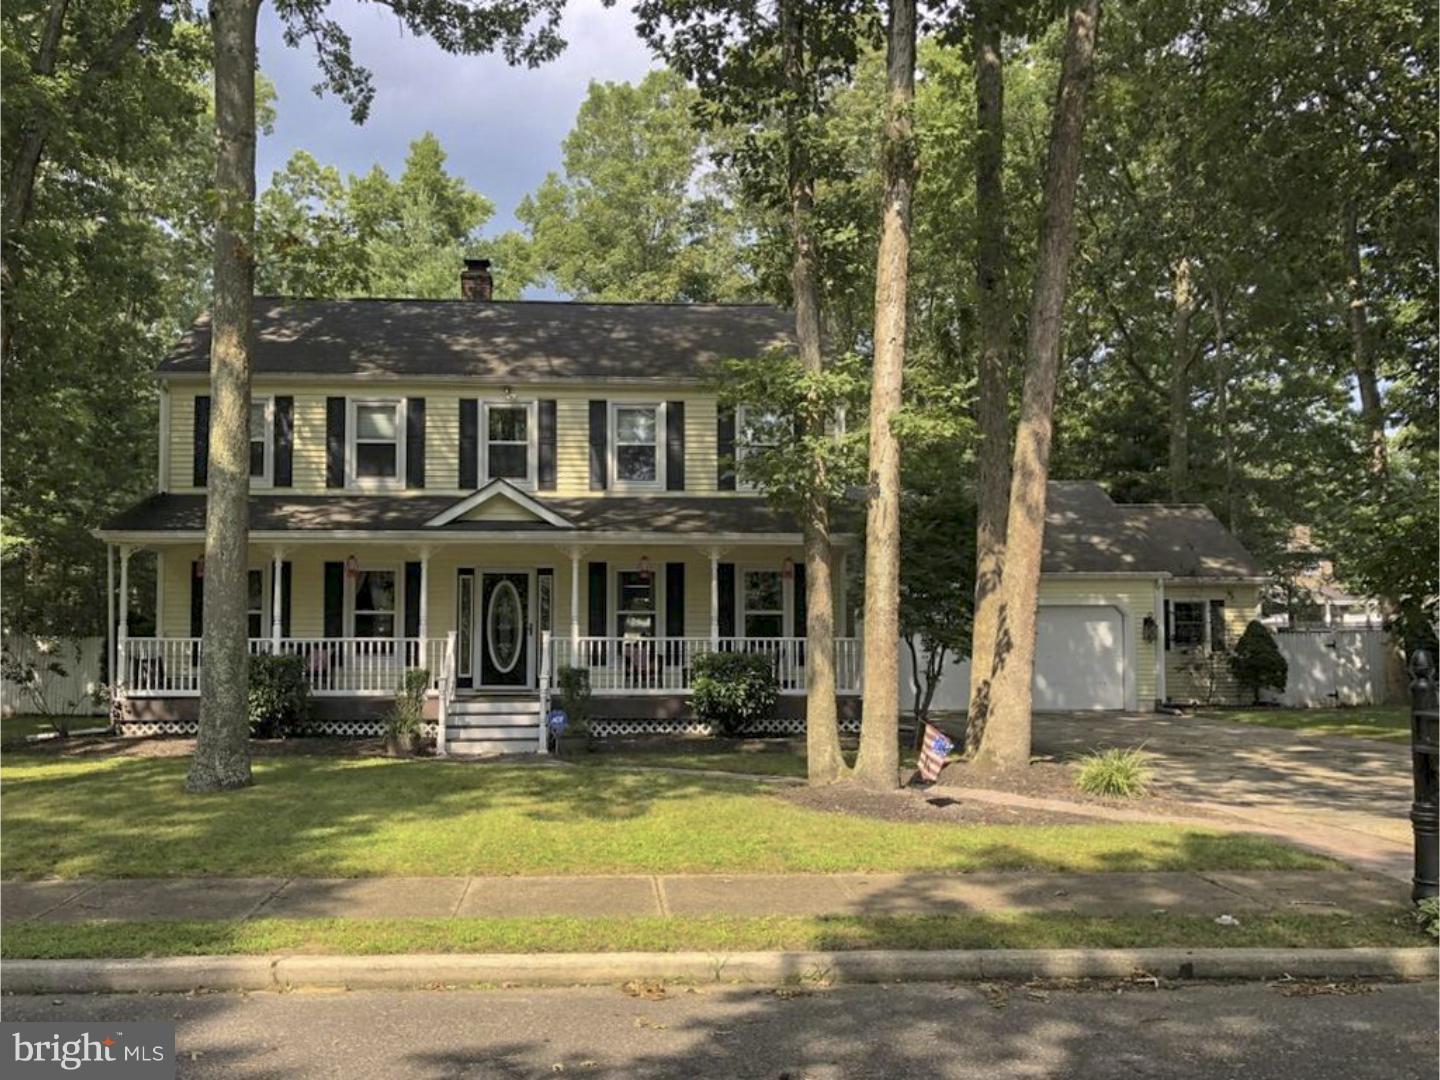 1104 PLYMOUTH LANDING ROAD, ABSECON, NJ 08201